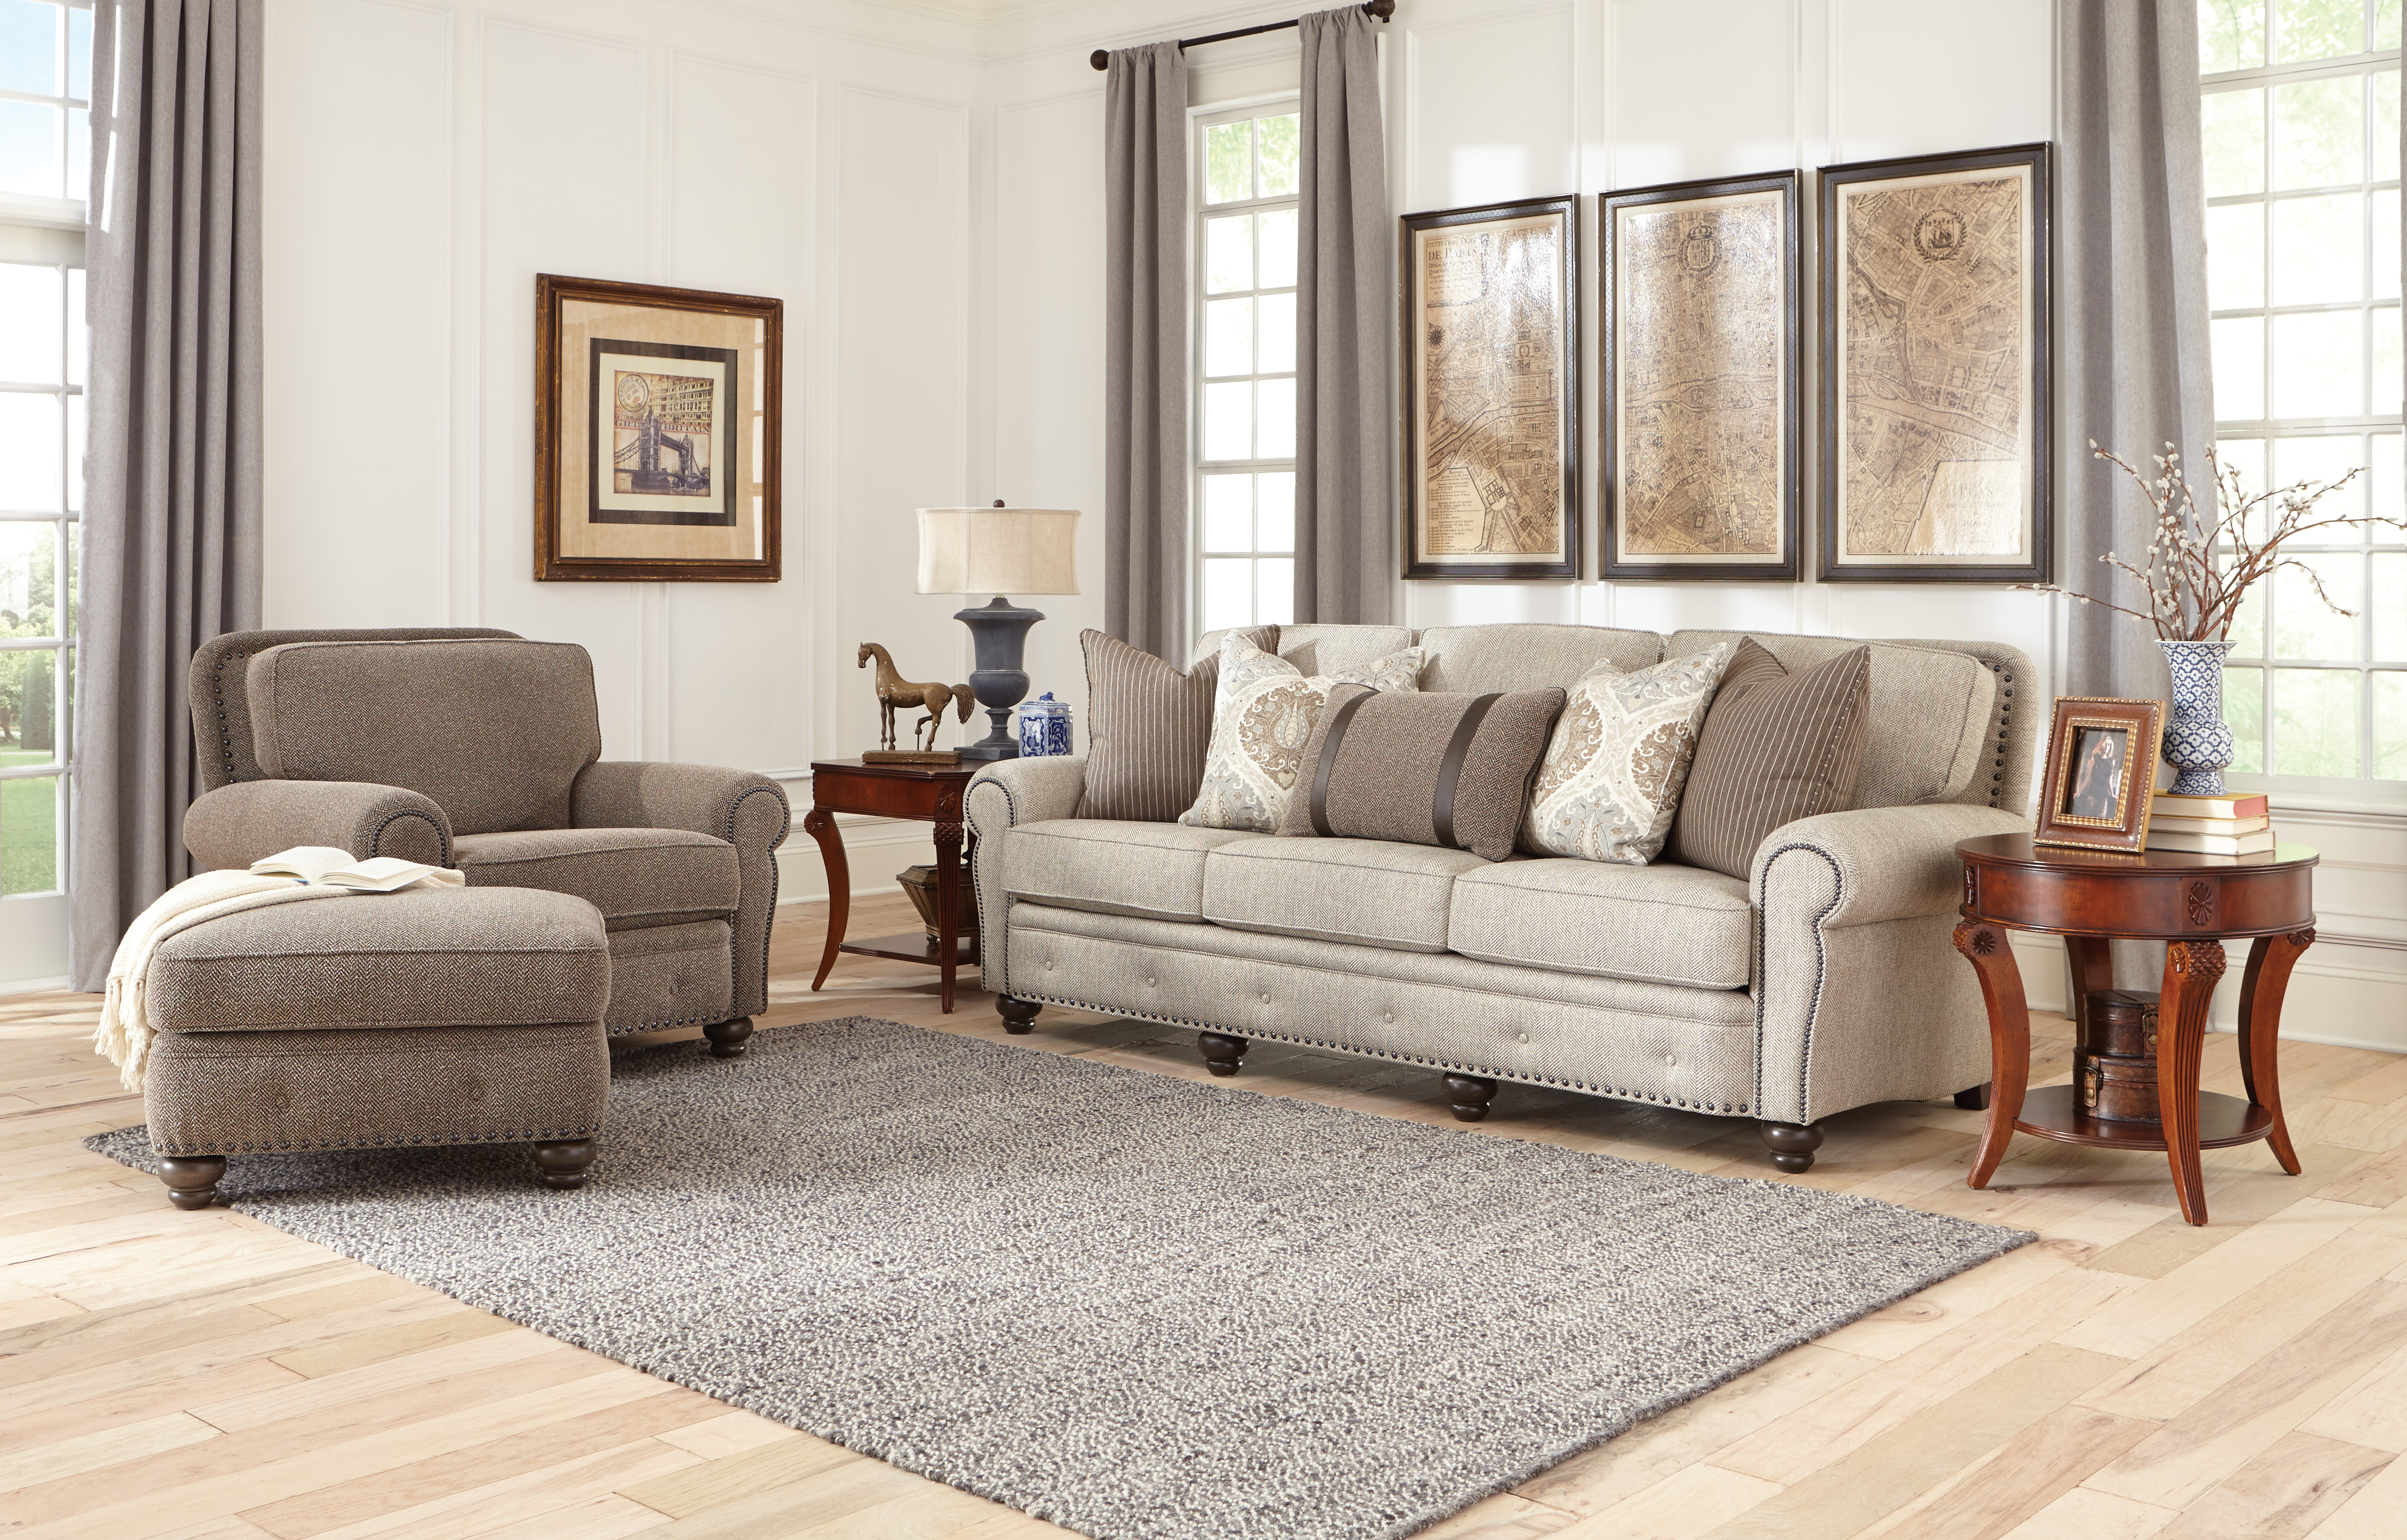 237 Style Sofa Product